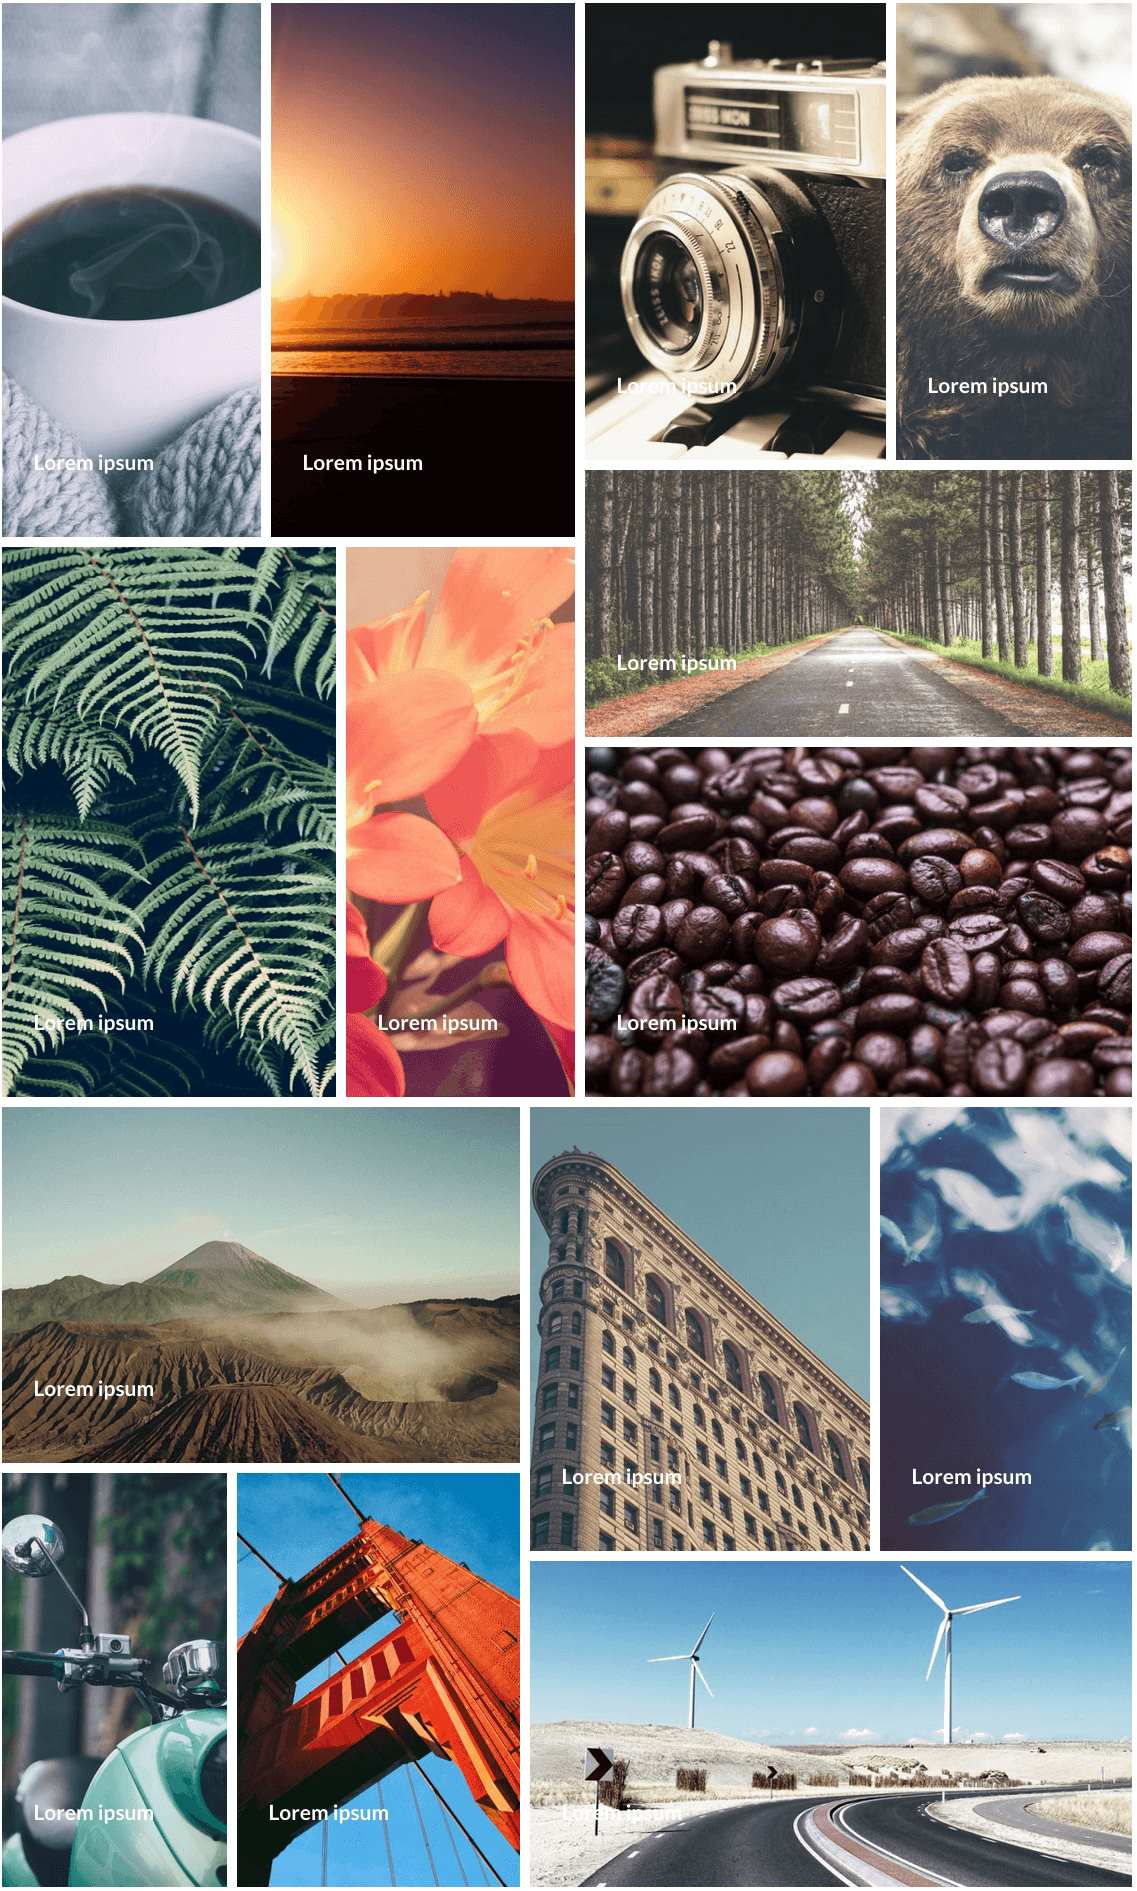 Gallery – A WordPress Modula Gallery Plugin WordPress, Download, Install